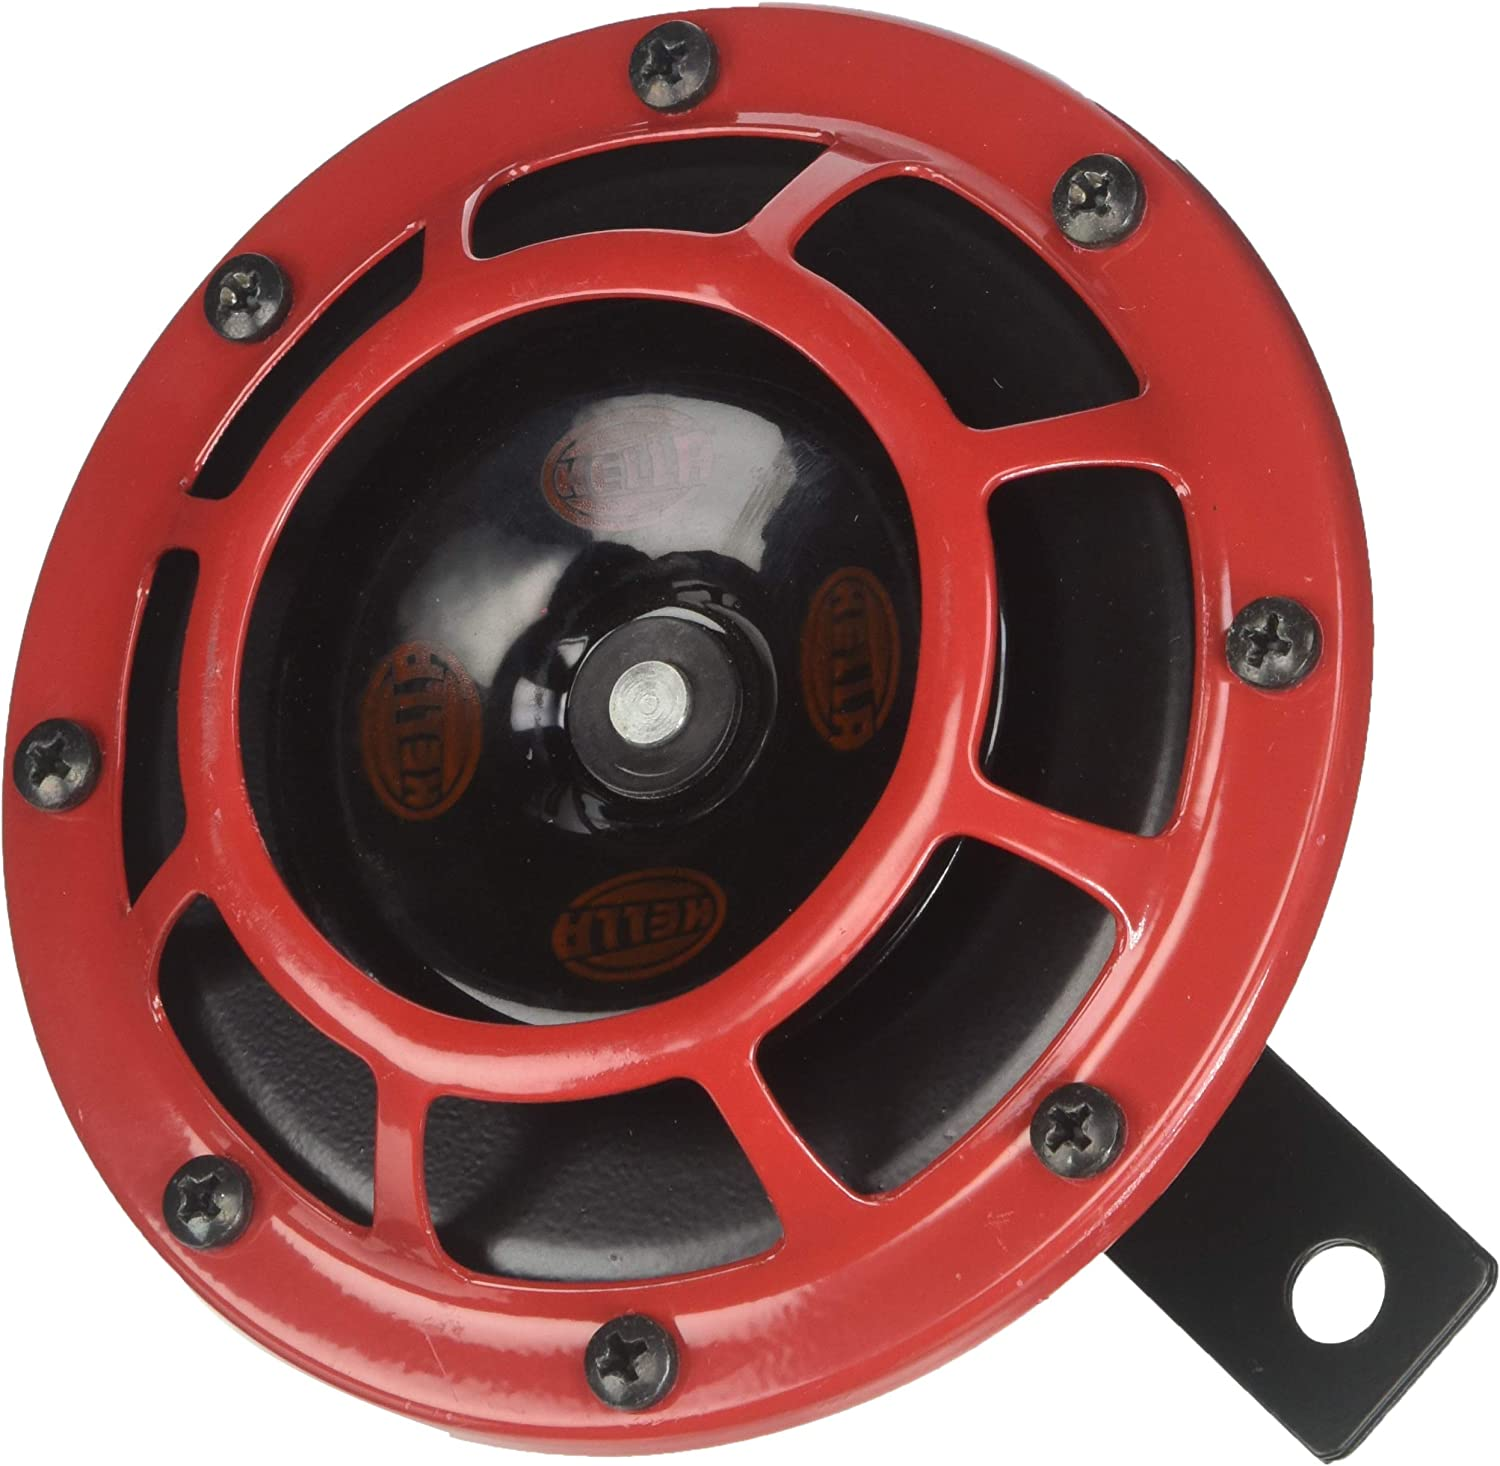 Single Horn HELLA H31631021 Supertone 12V High Tone Horn with Red Protective Grill